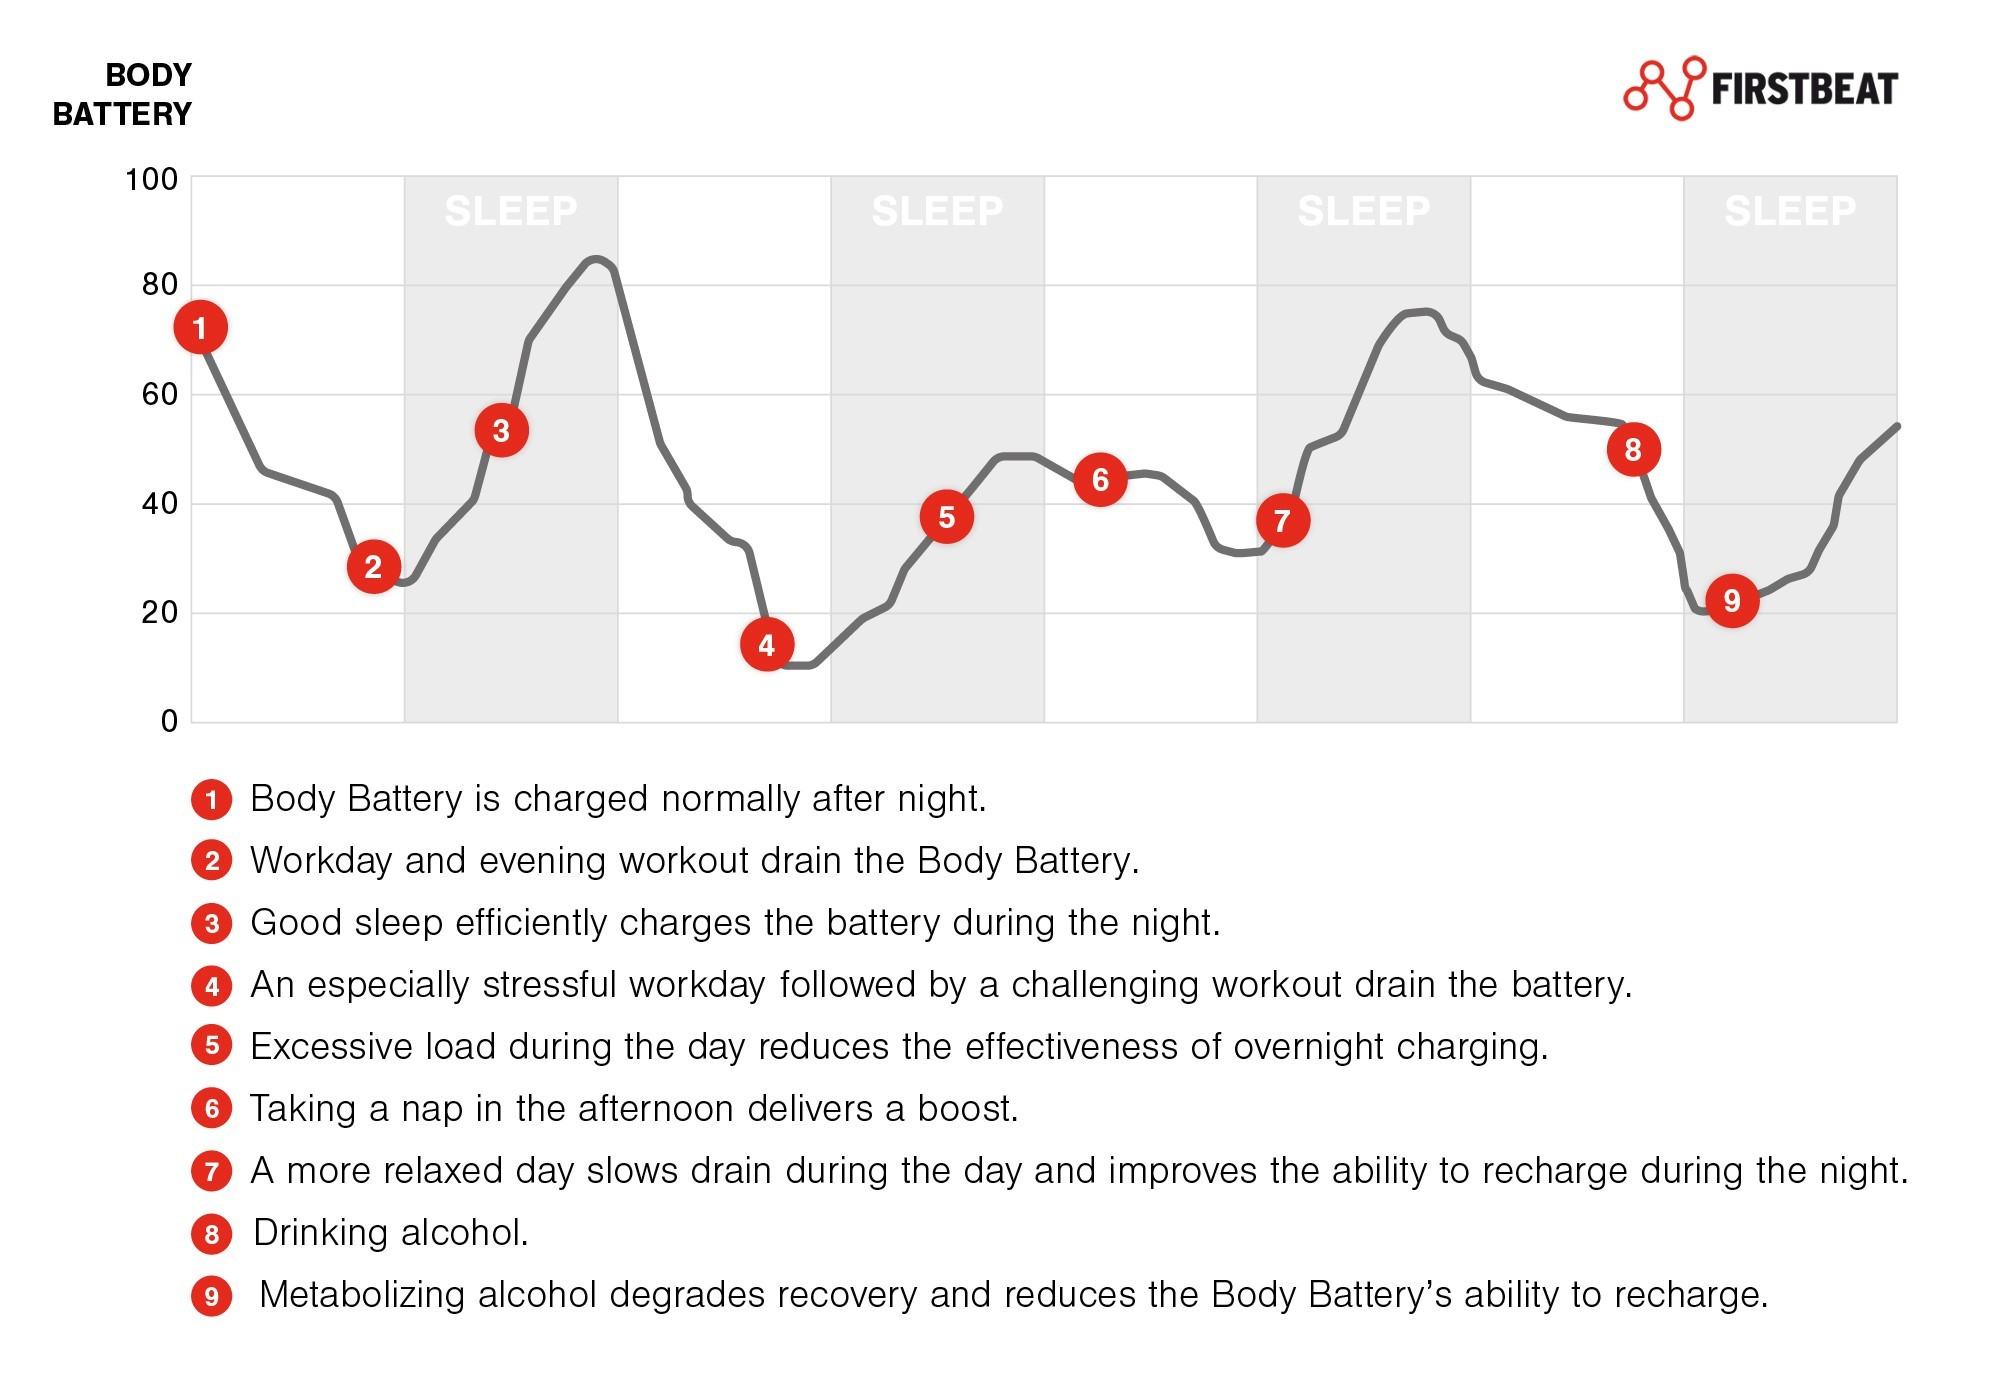 Body Battery 4-day graph